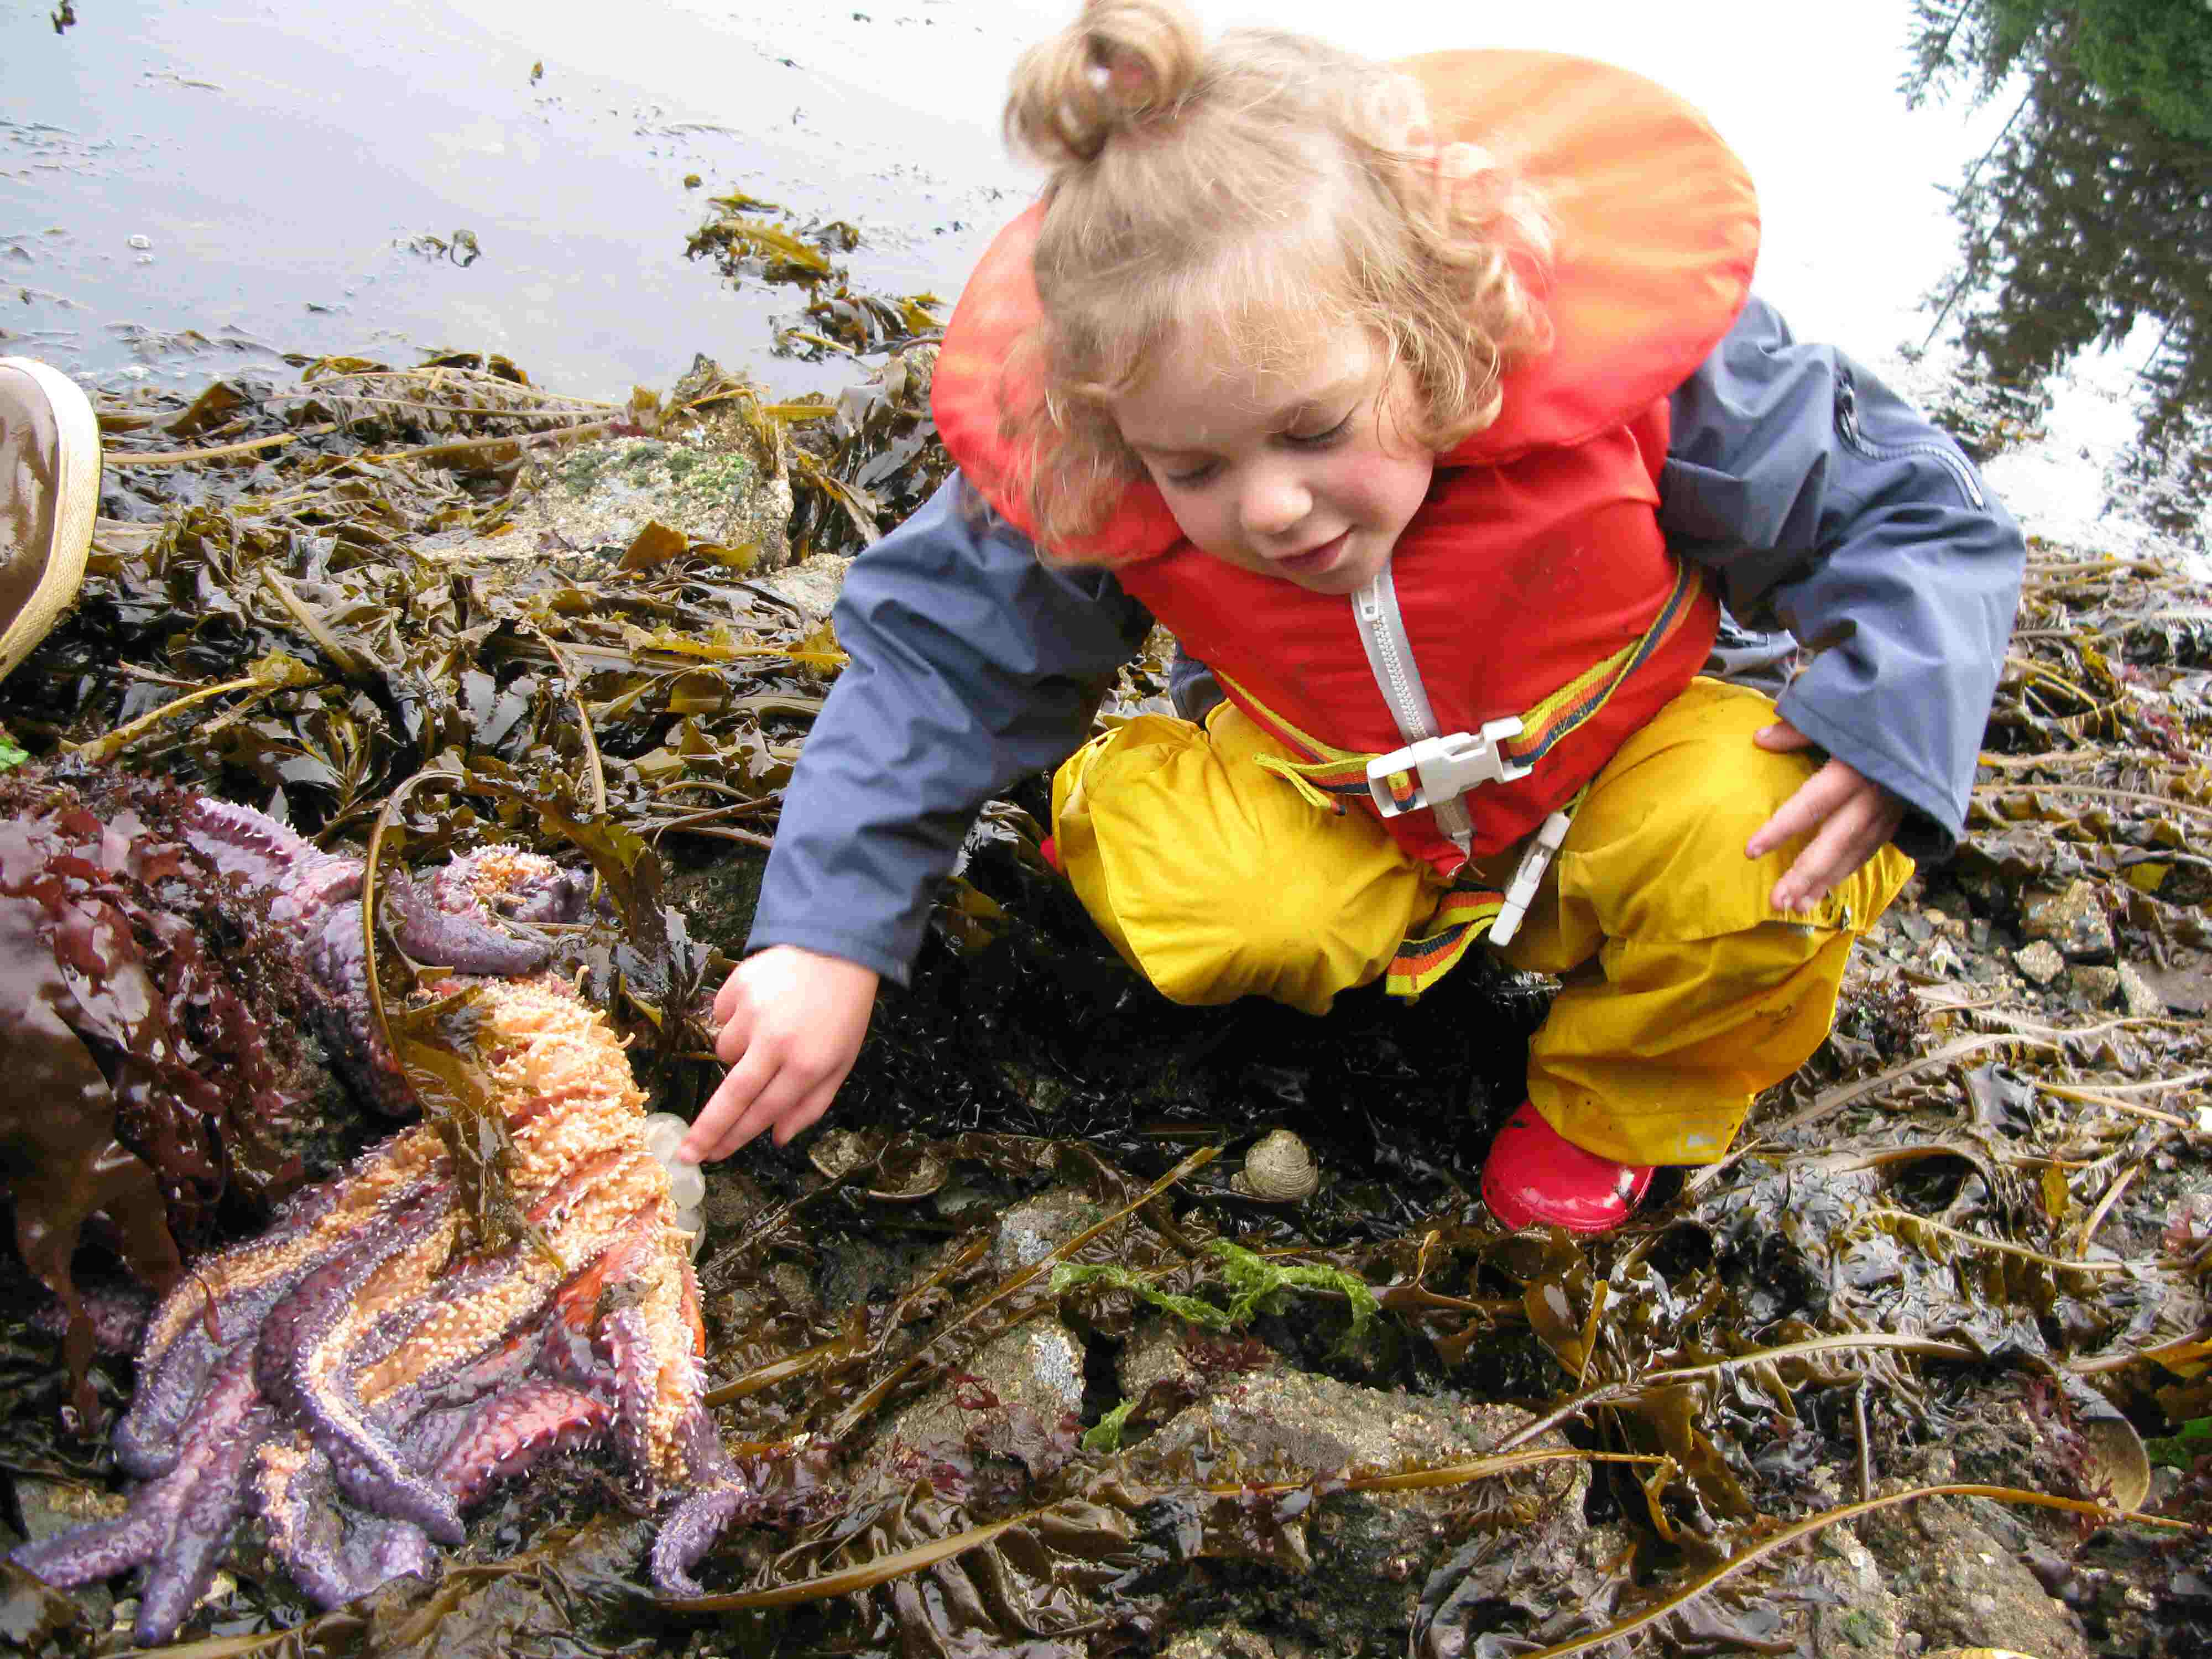 Kachemak Bay tidepool discovery tour, observing the stomach of starfish